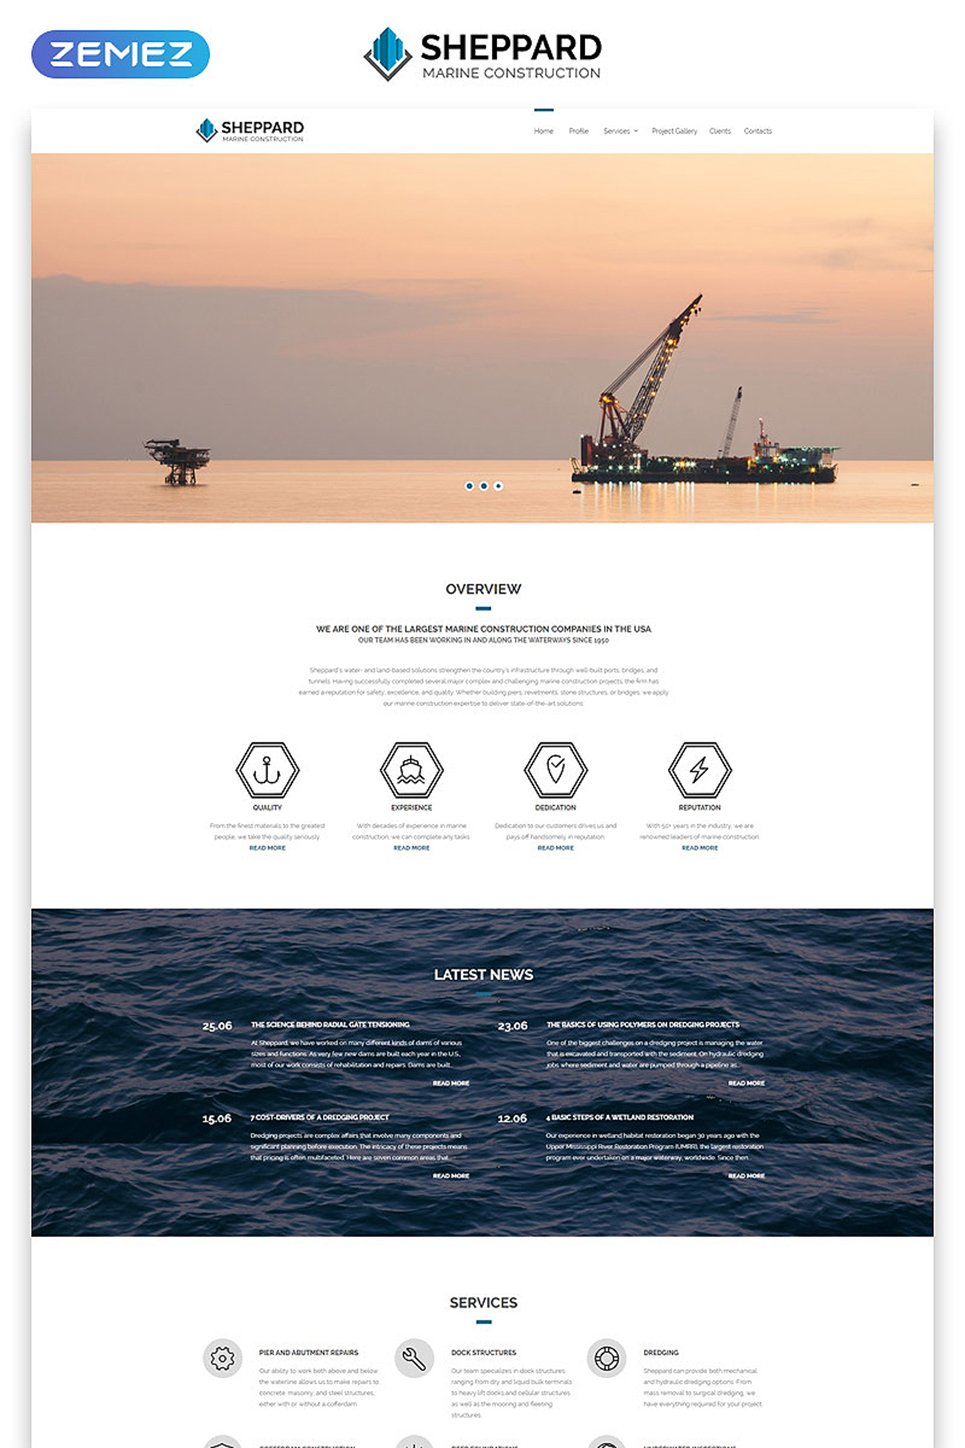 Marine Construction Company template illustration image